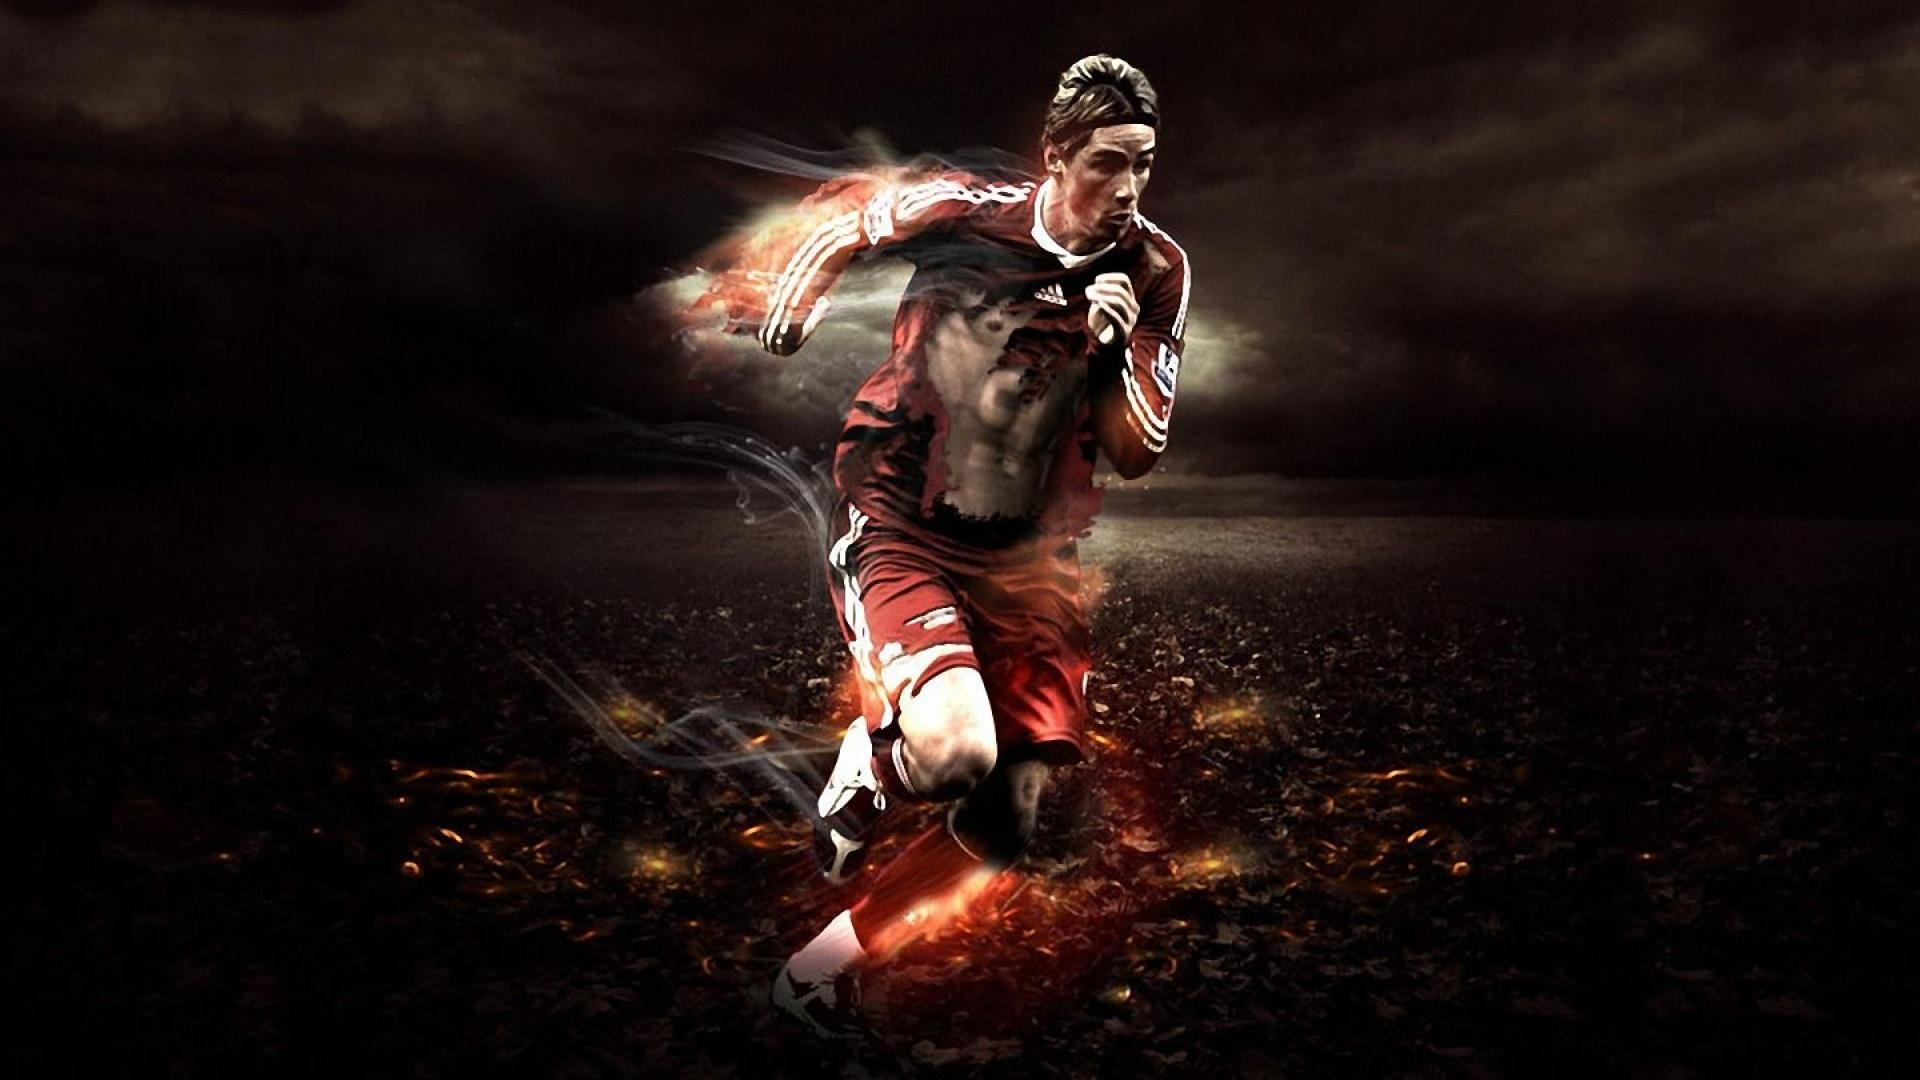 Awesome-Soccer-HD-Free-Download-wallpaper-wpc9002473